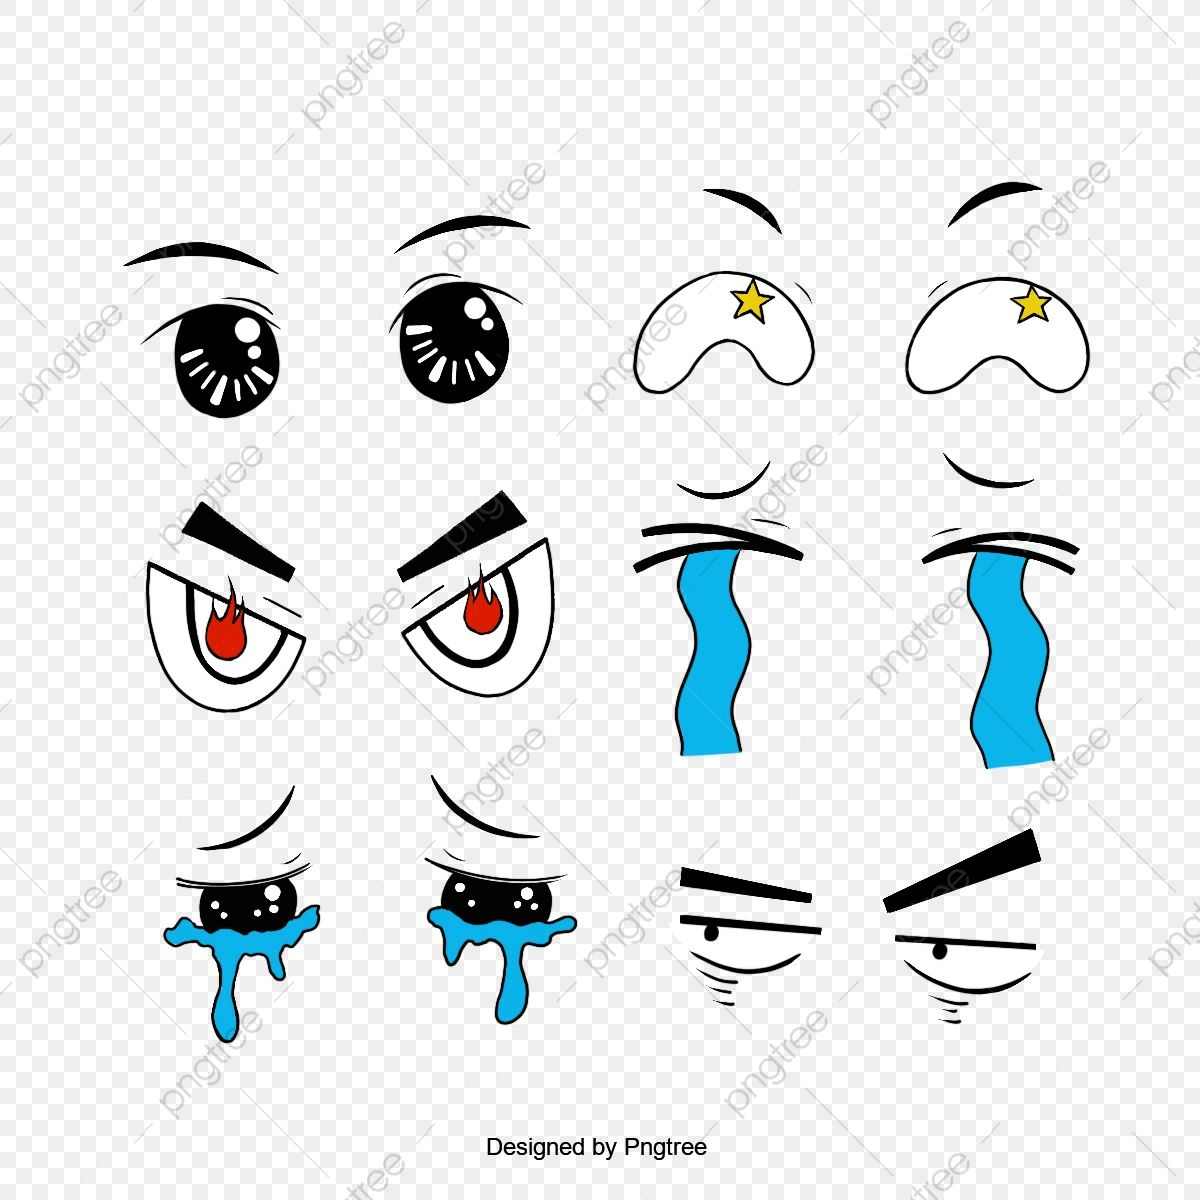 Cartoon Eye Collection Element Eyes Clipart Big Eyes Round Eyes Png Transparent Image And Clipart For Free Download Cartoon Eyes Big Eyes Round Eyes